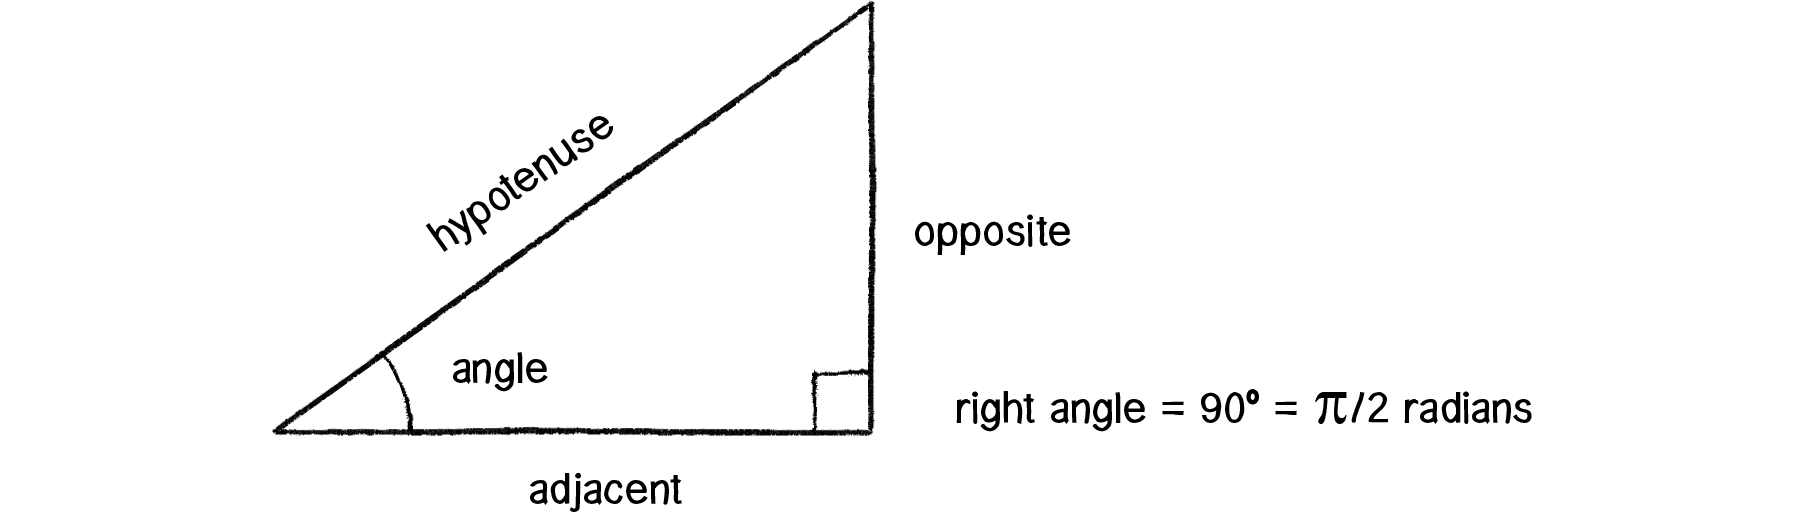 Diagram of a triangle